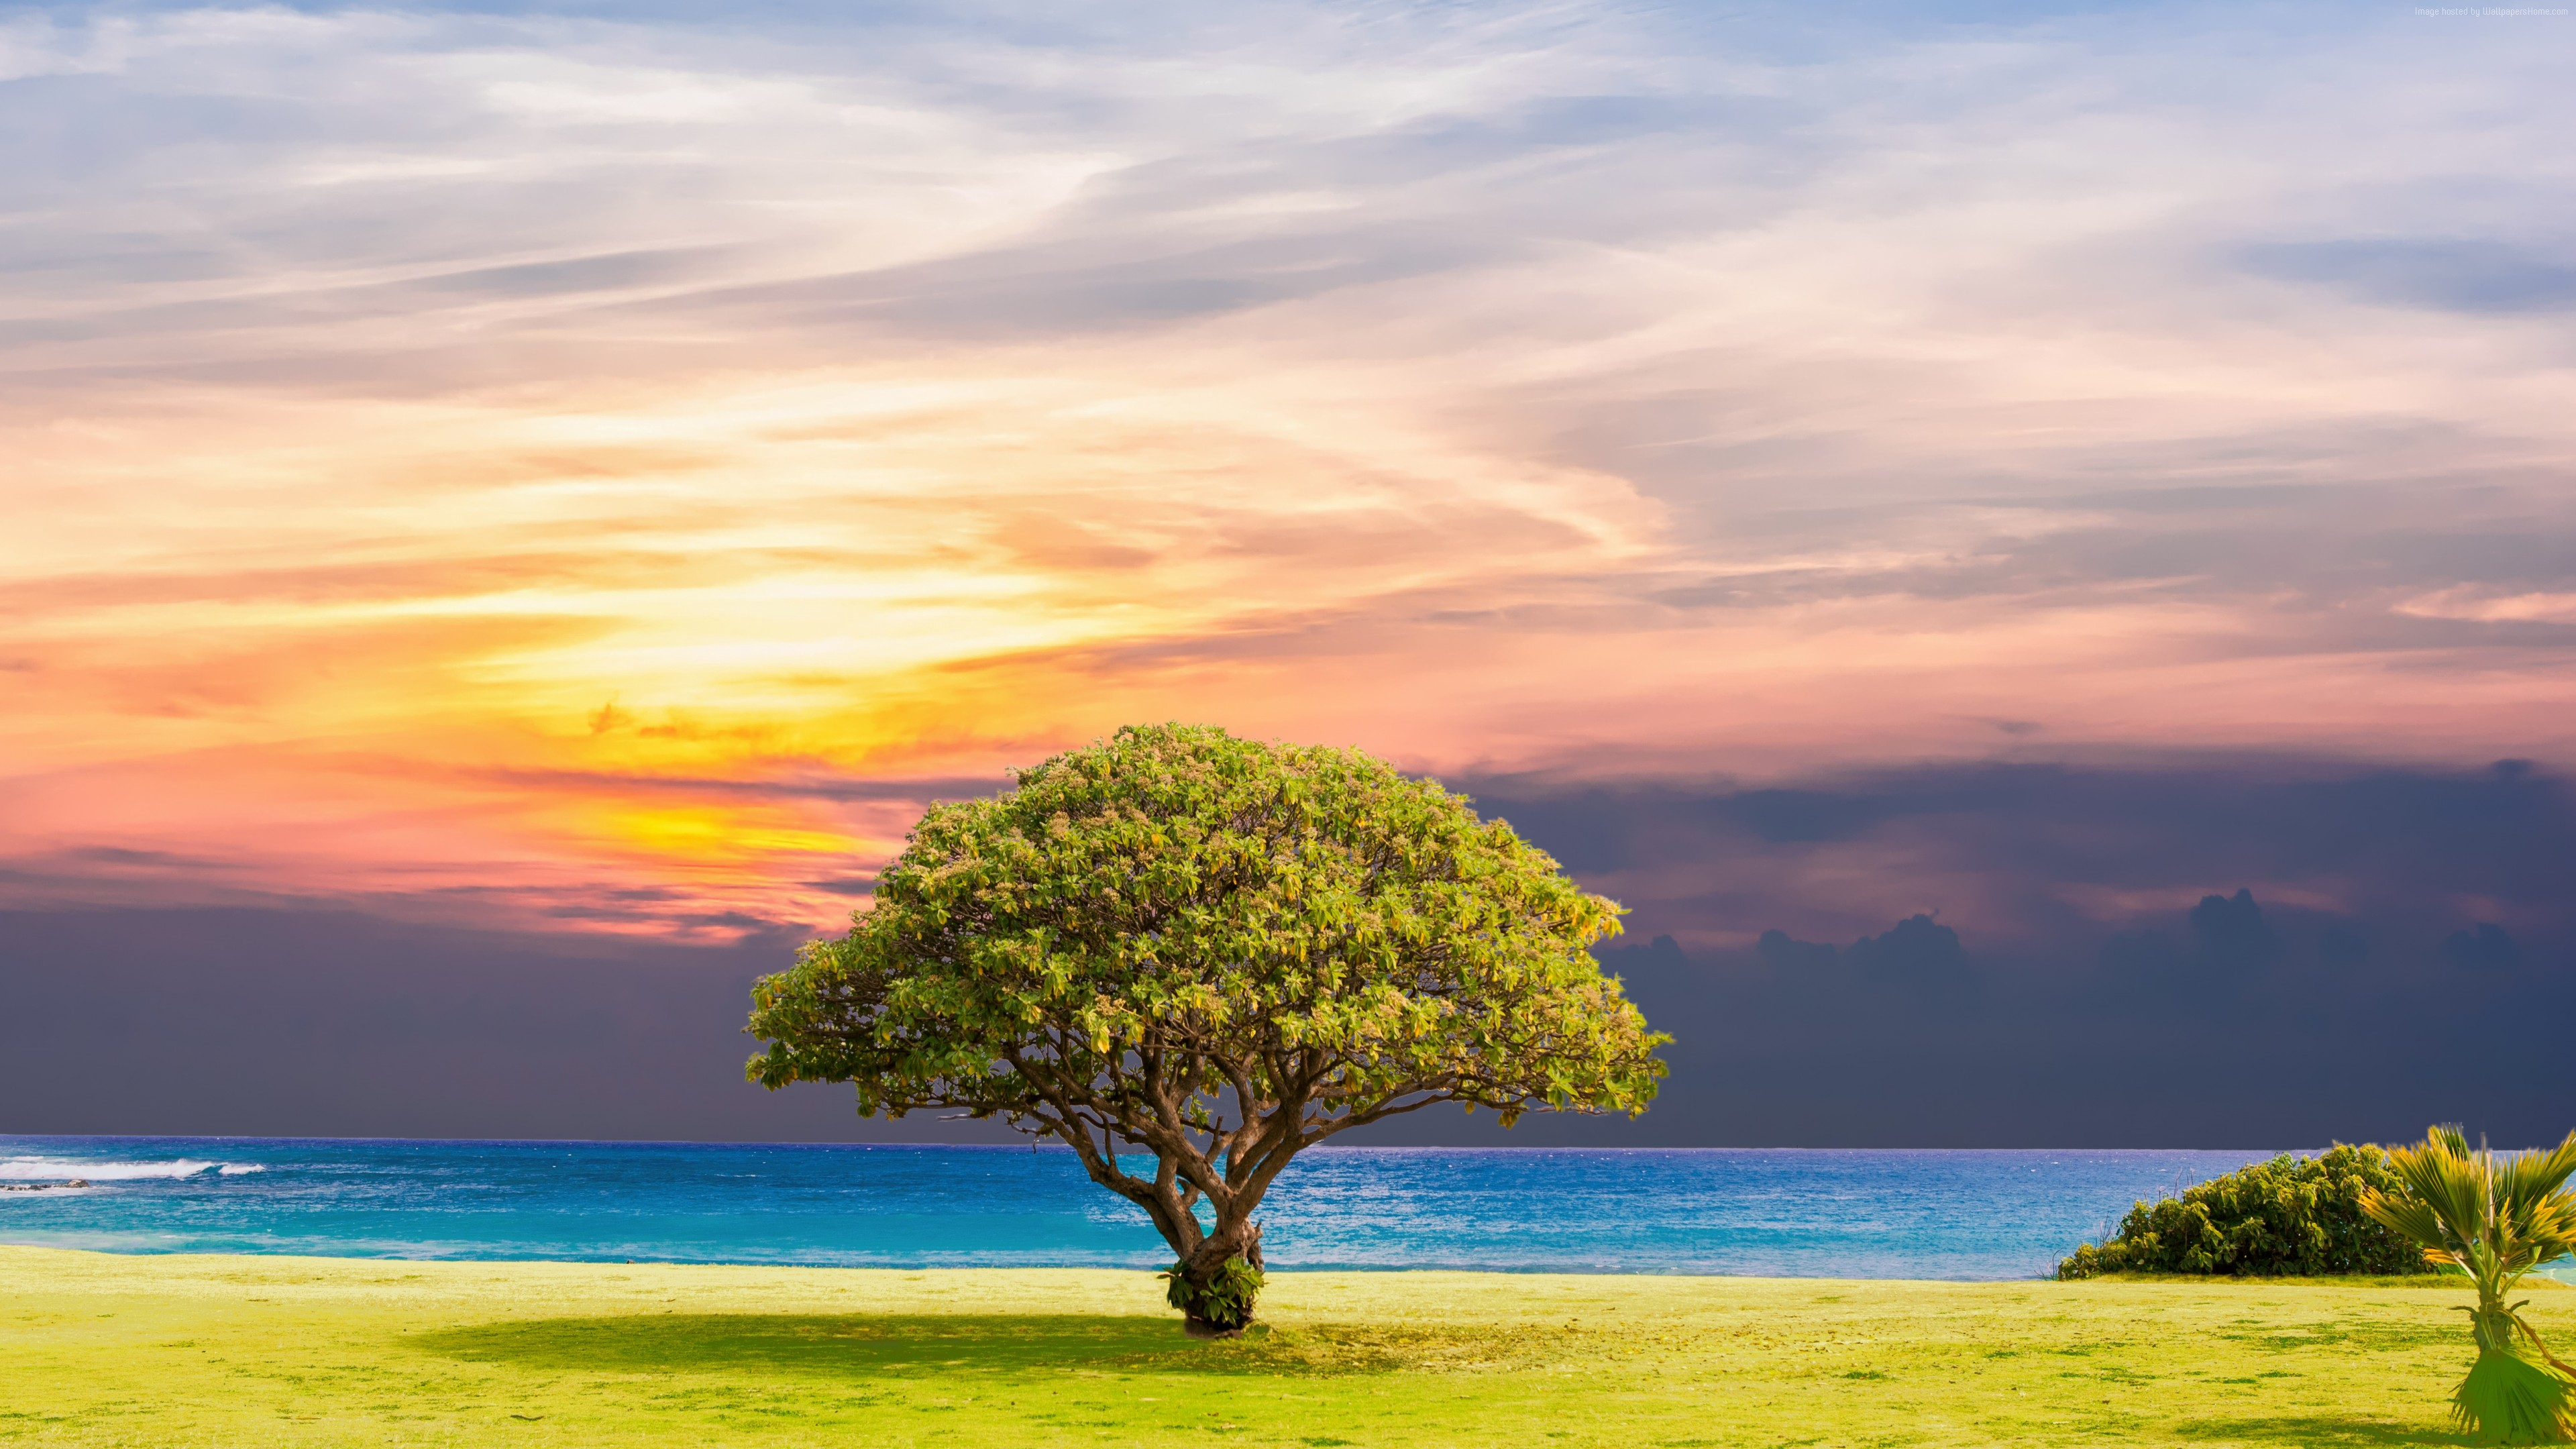 Stock Images tree, nature, ocean, landscape, 5k, Stock Images